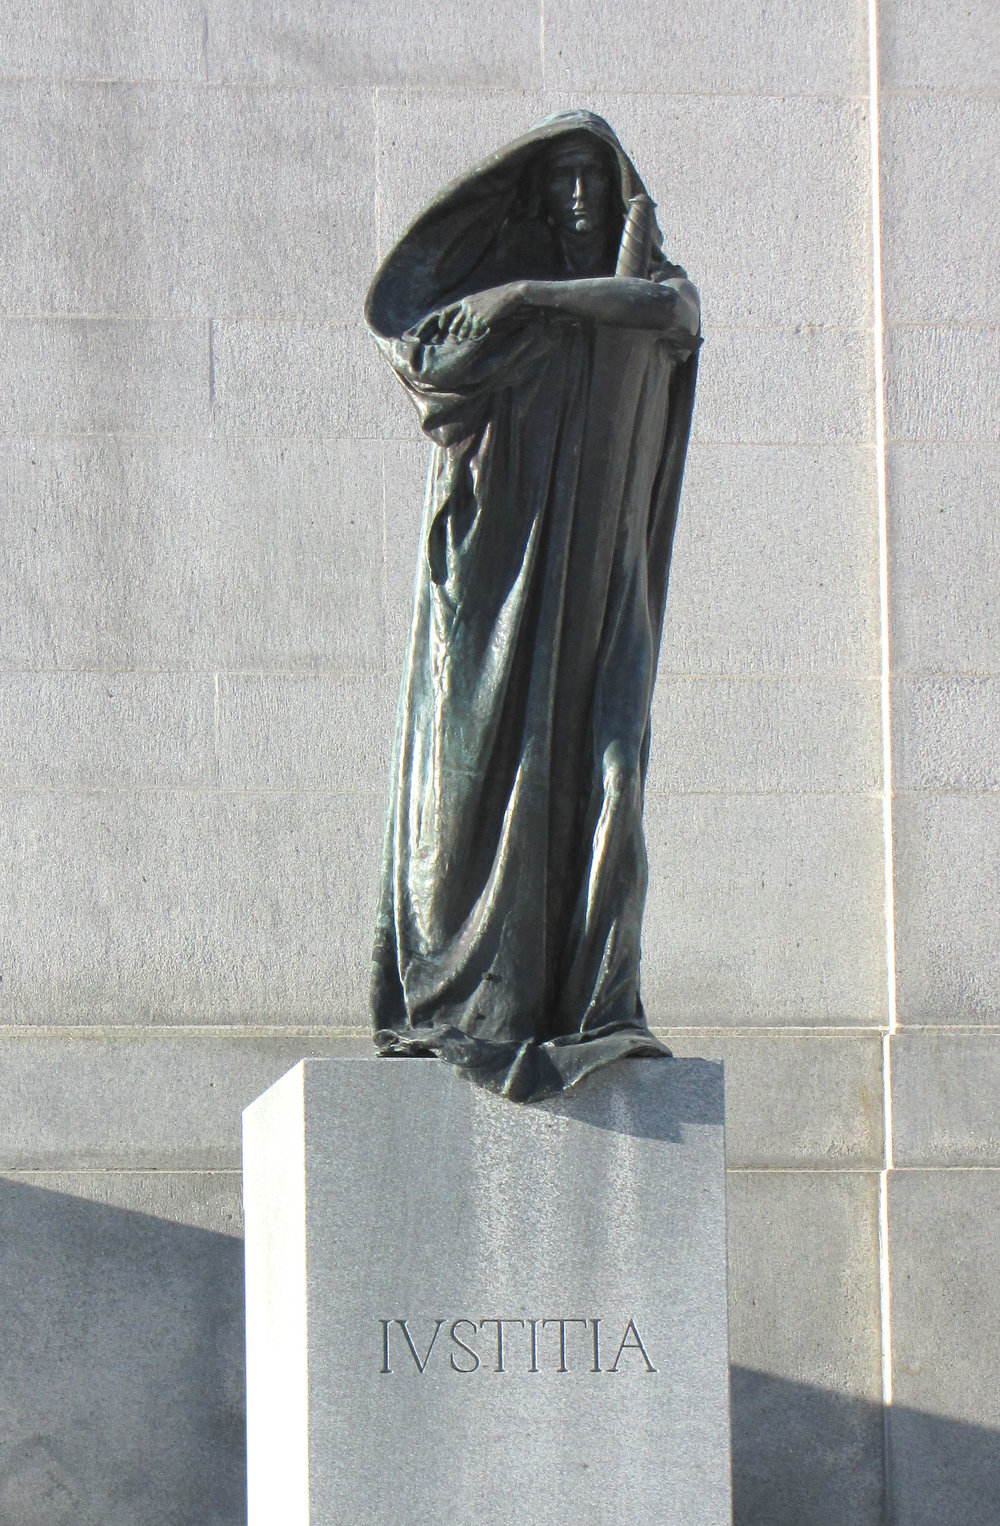 'Justice' by Walter Seymour Allward, the Supreme Court of Canada, Ottawa, Ontario